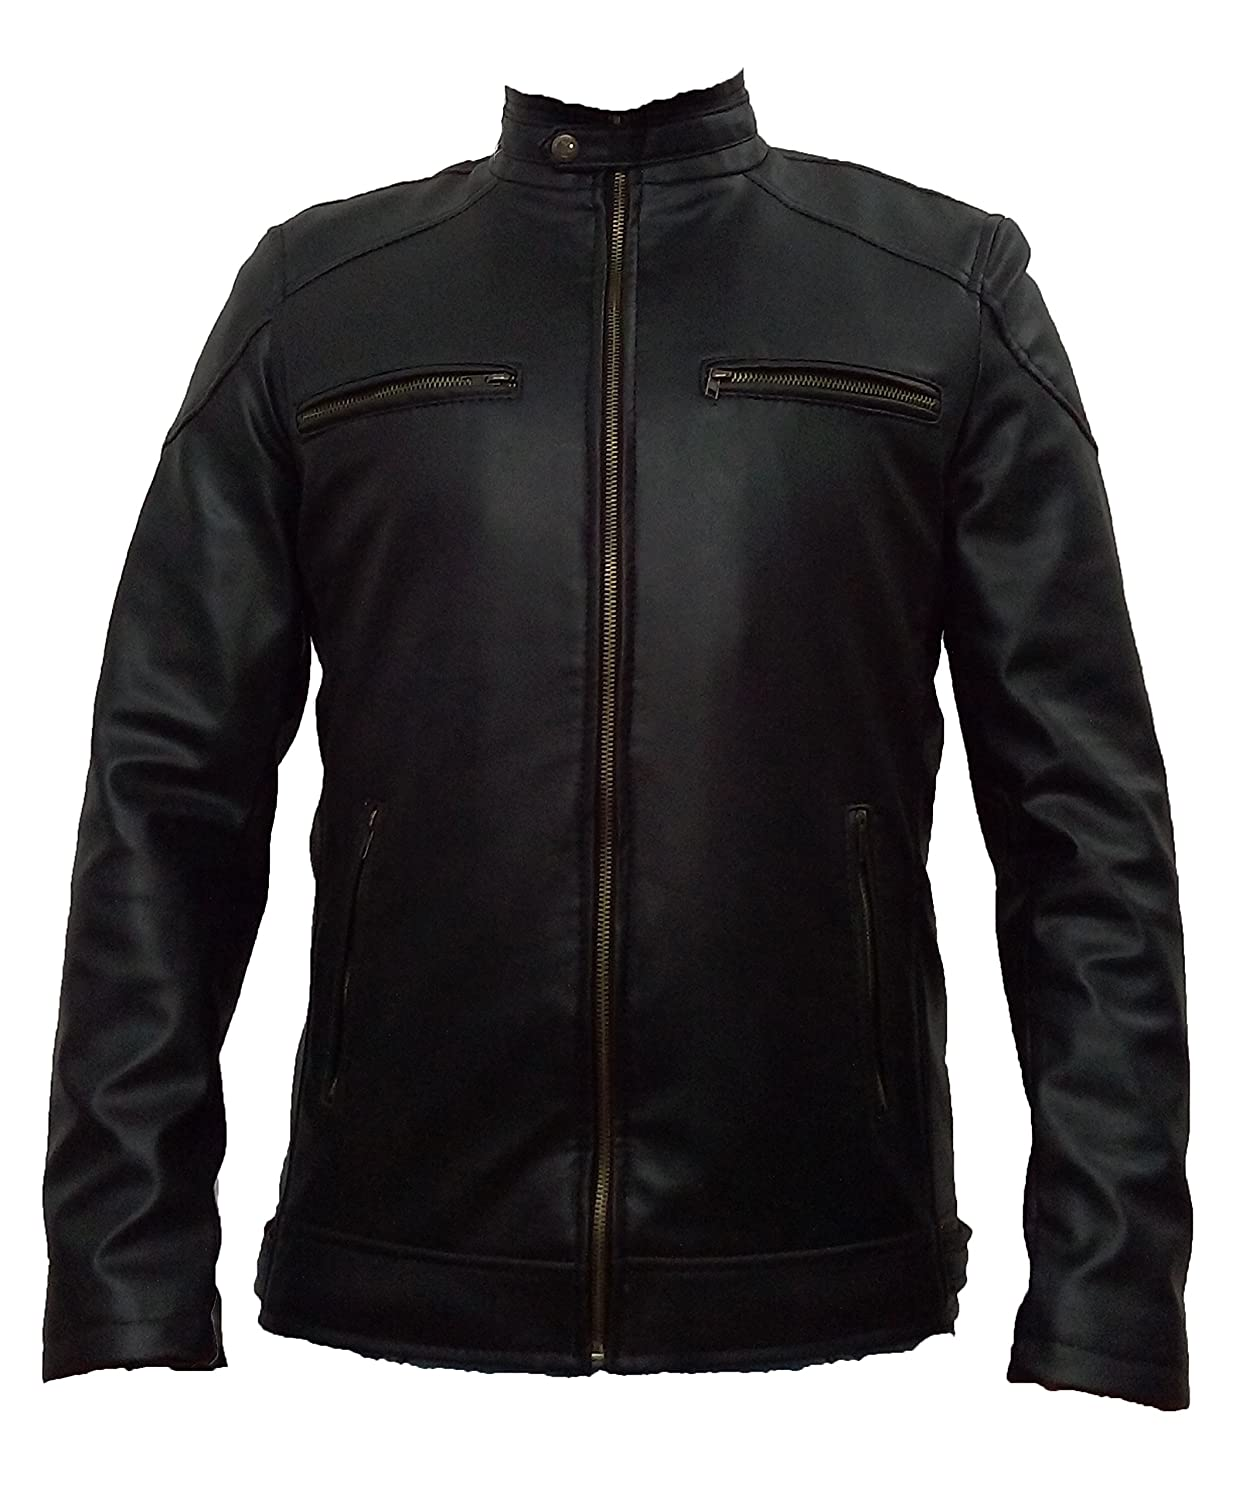 Faux leather Stylish Men's Winter Jacket